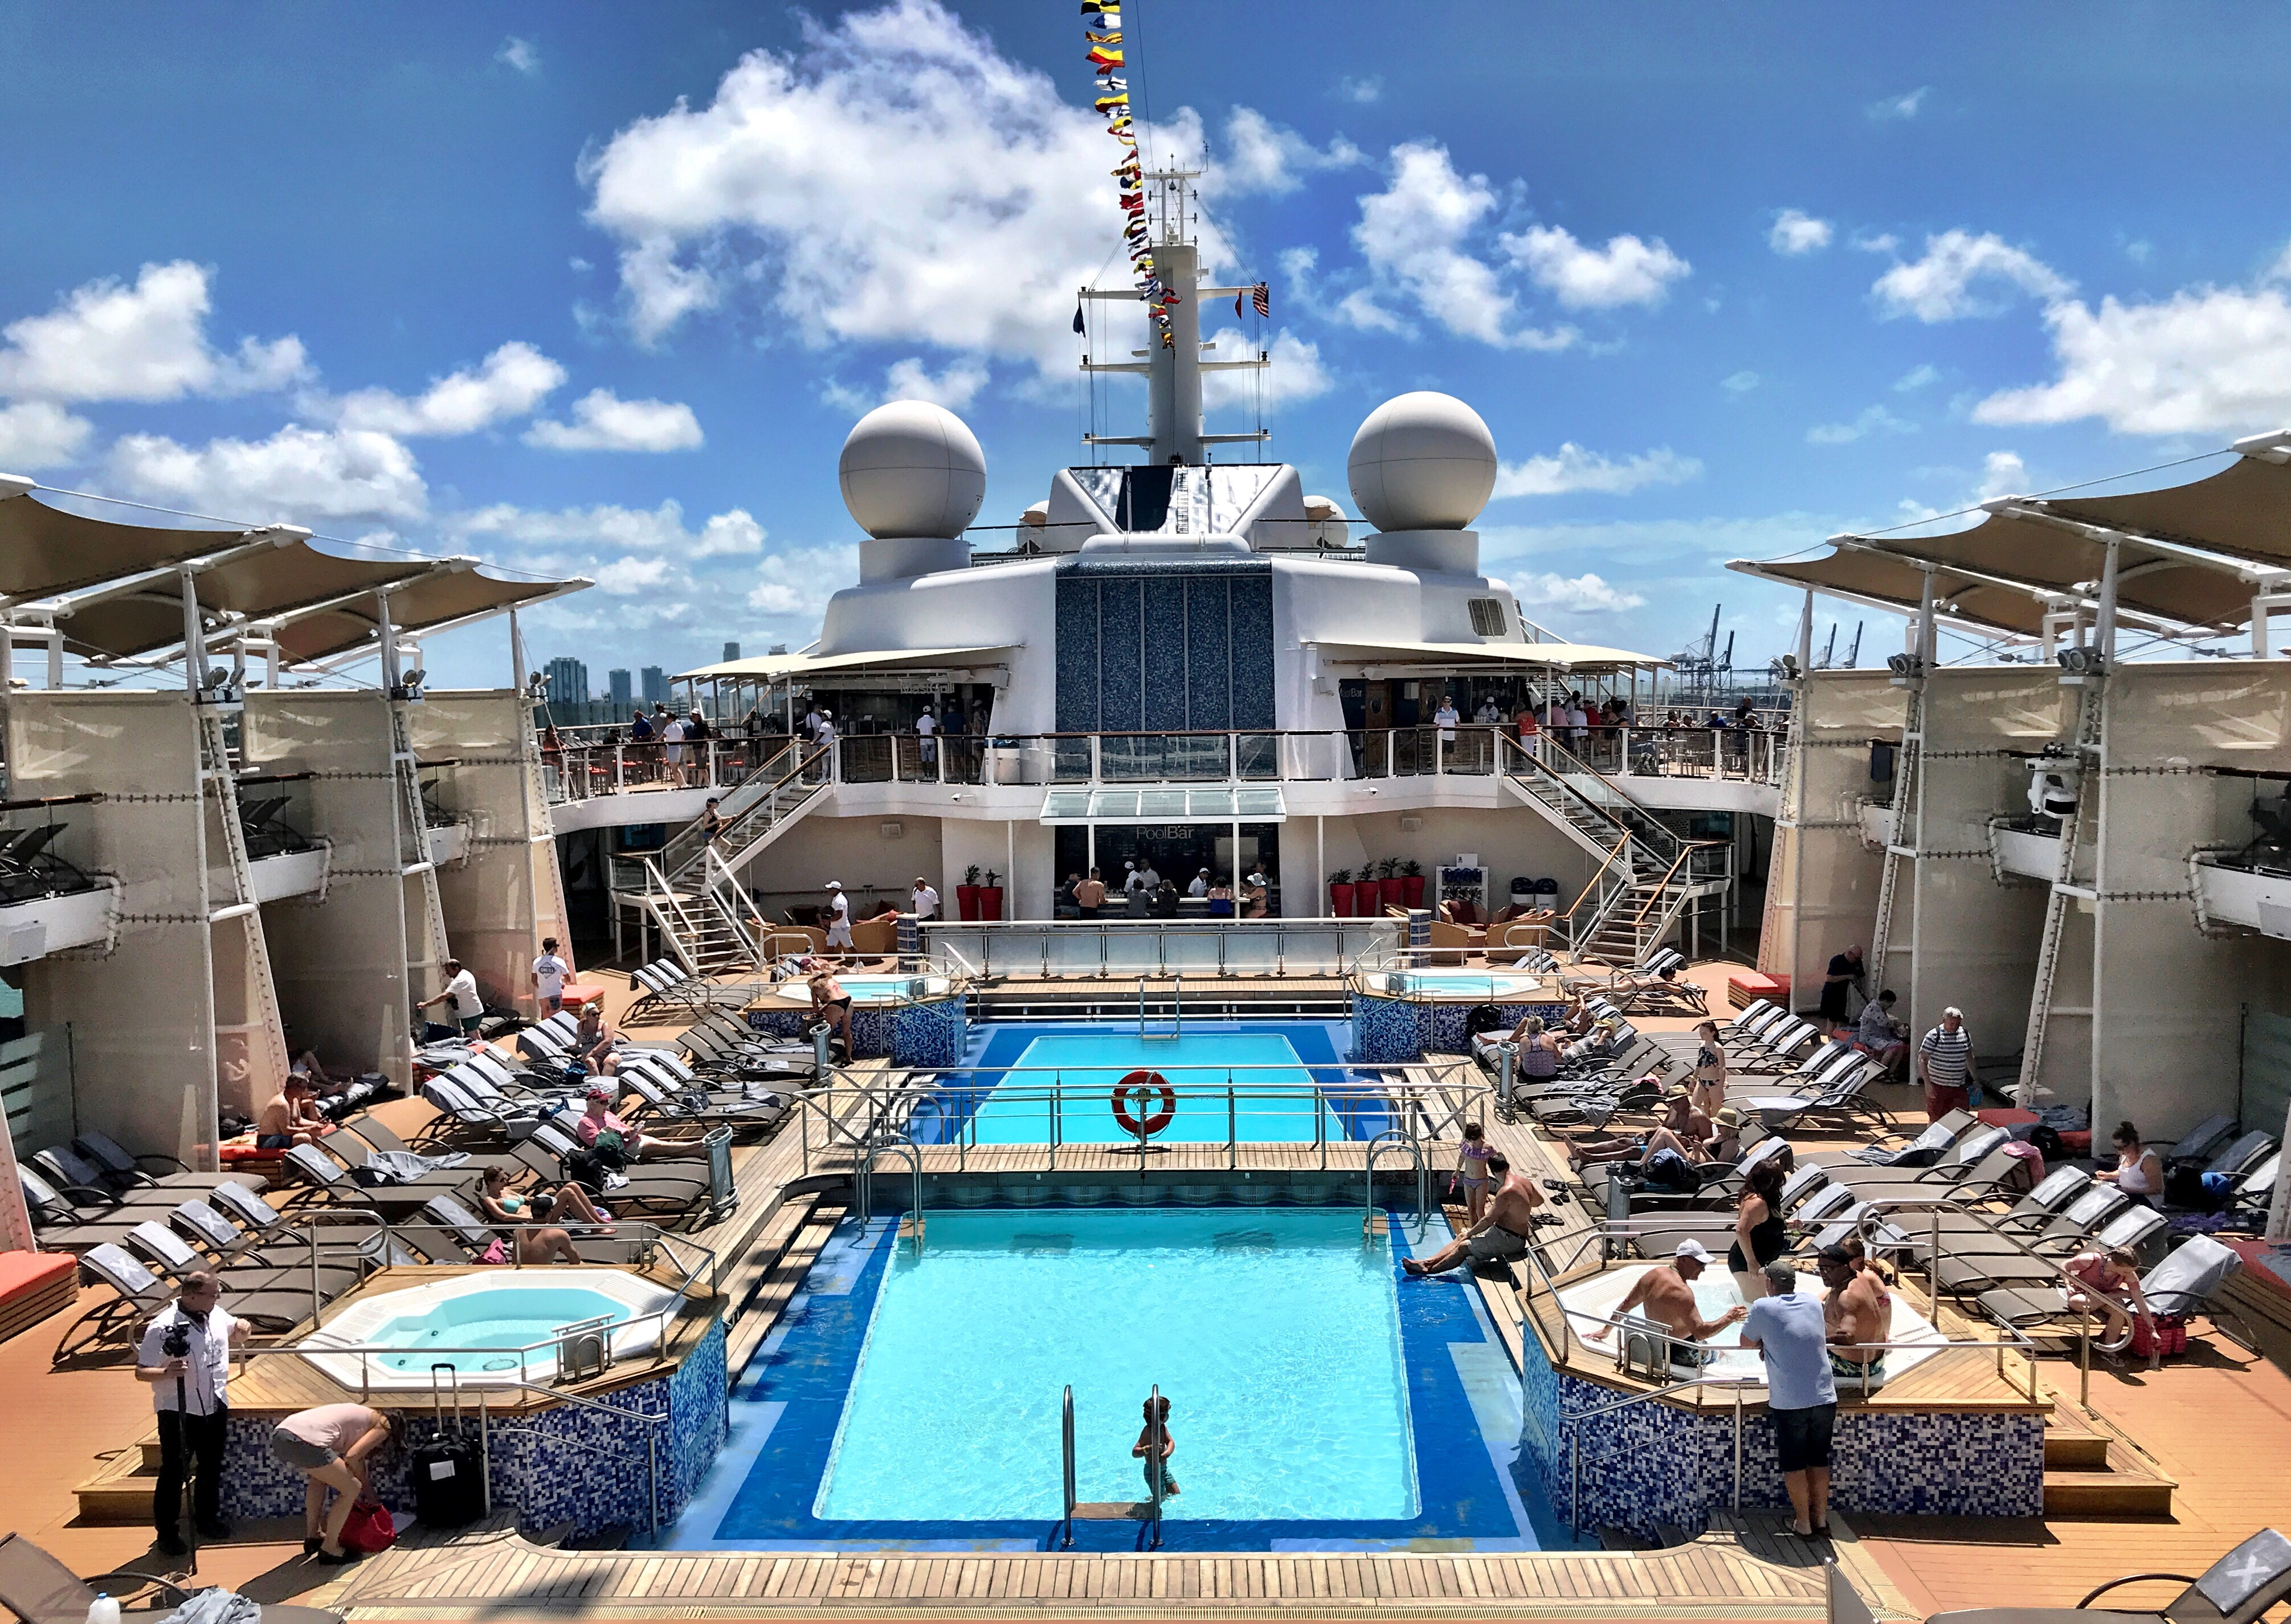 Celebrity Equinox is a Solstice-class ship that debuted in 2009.